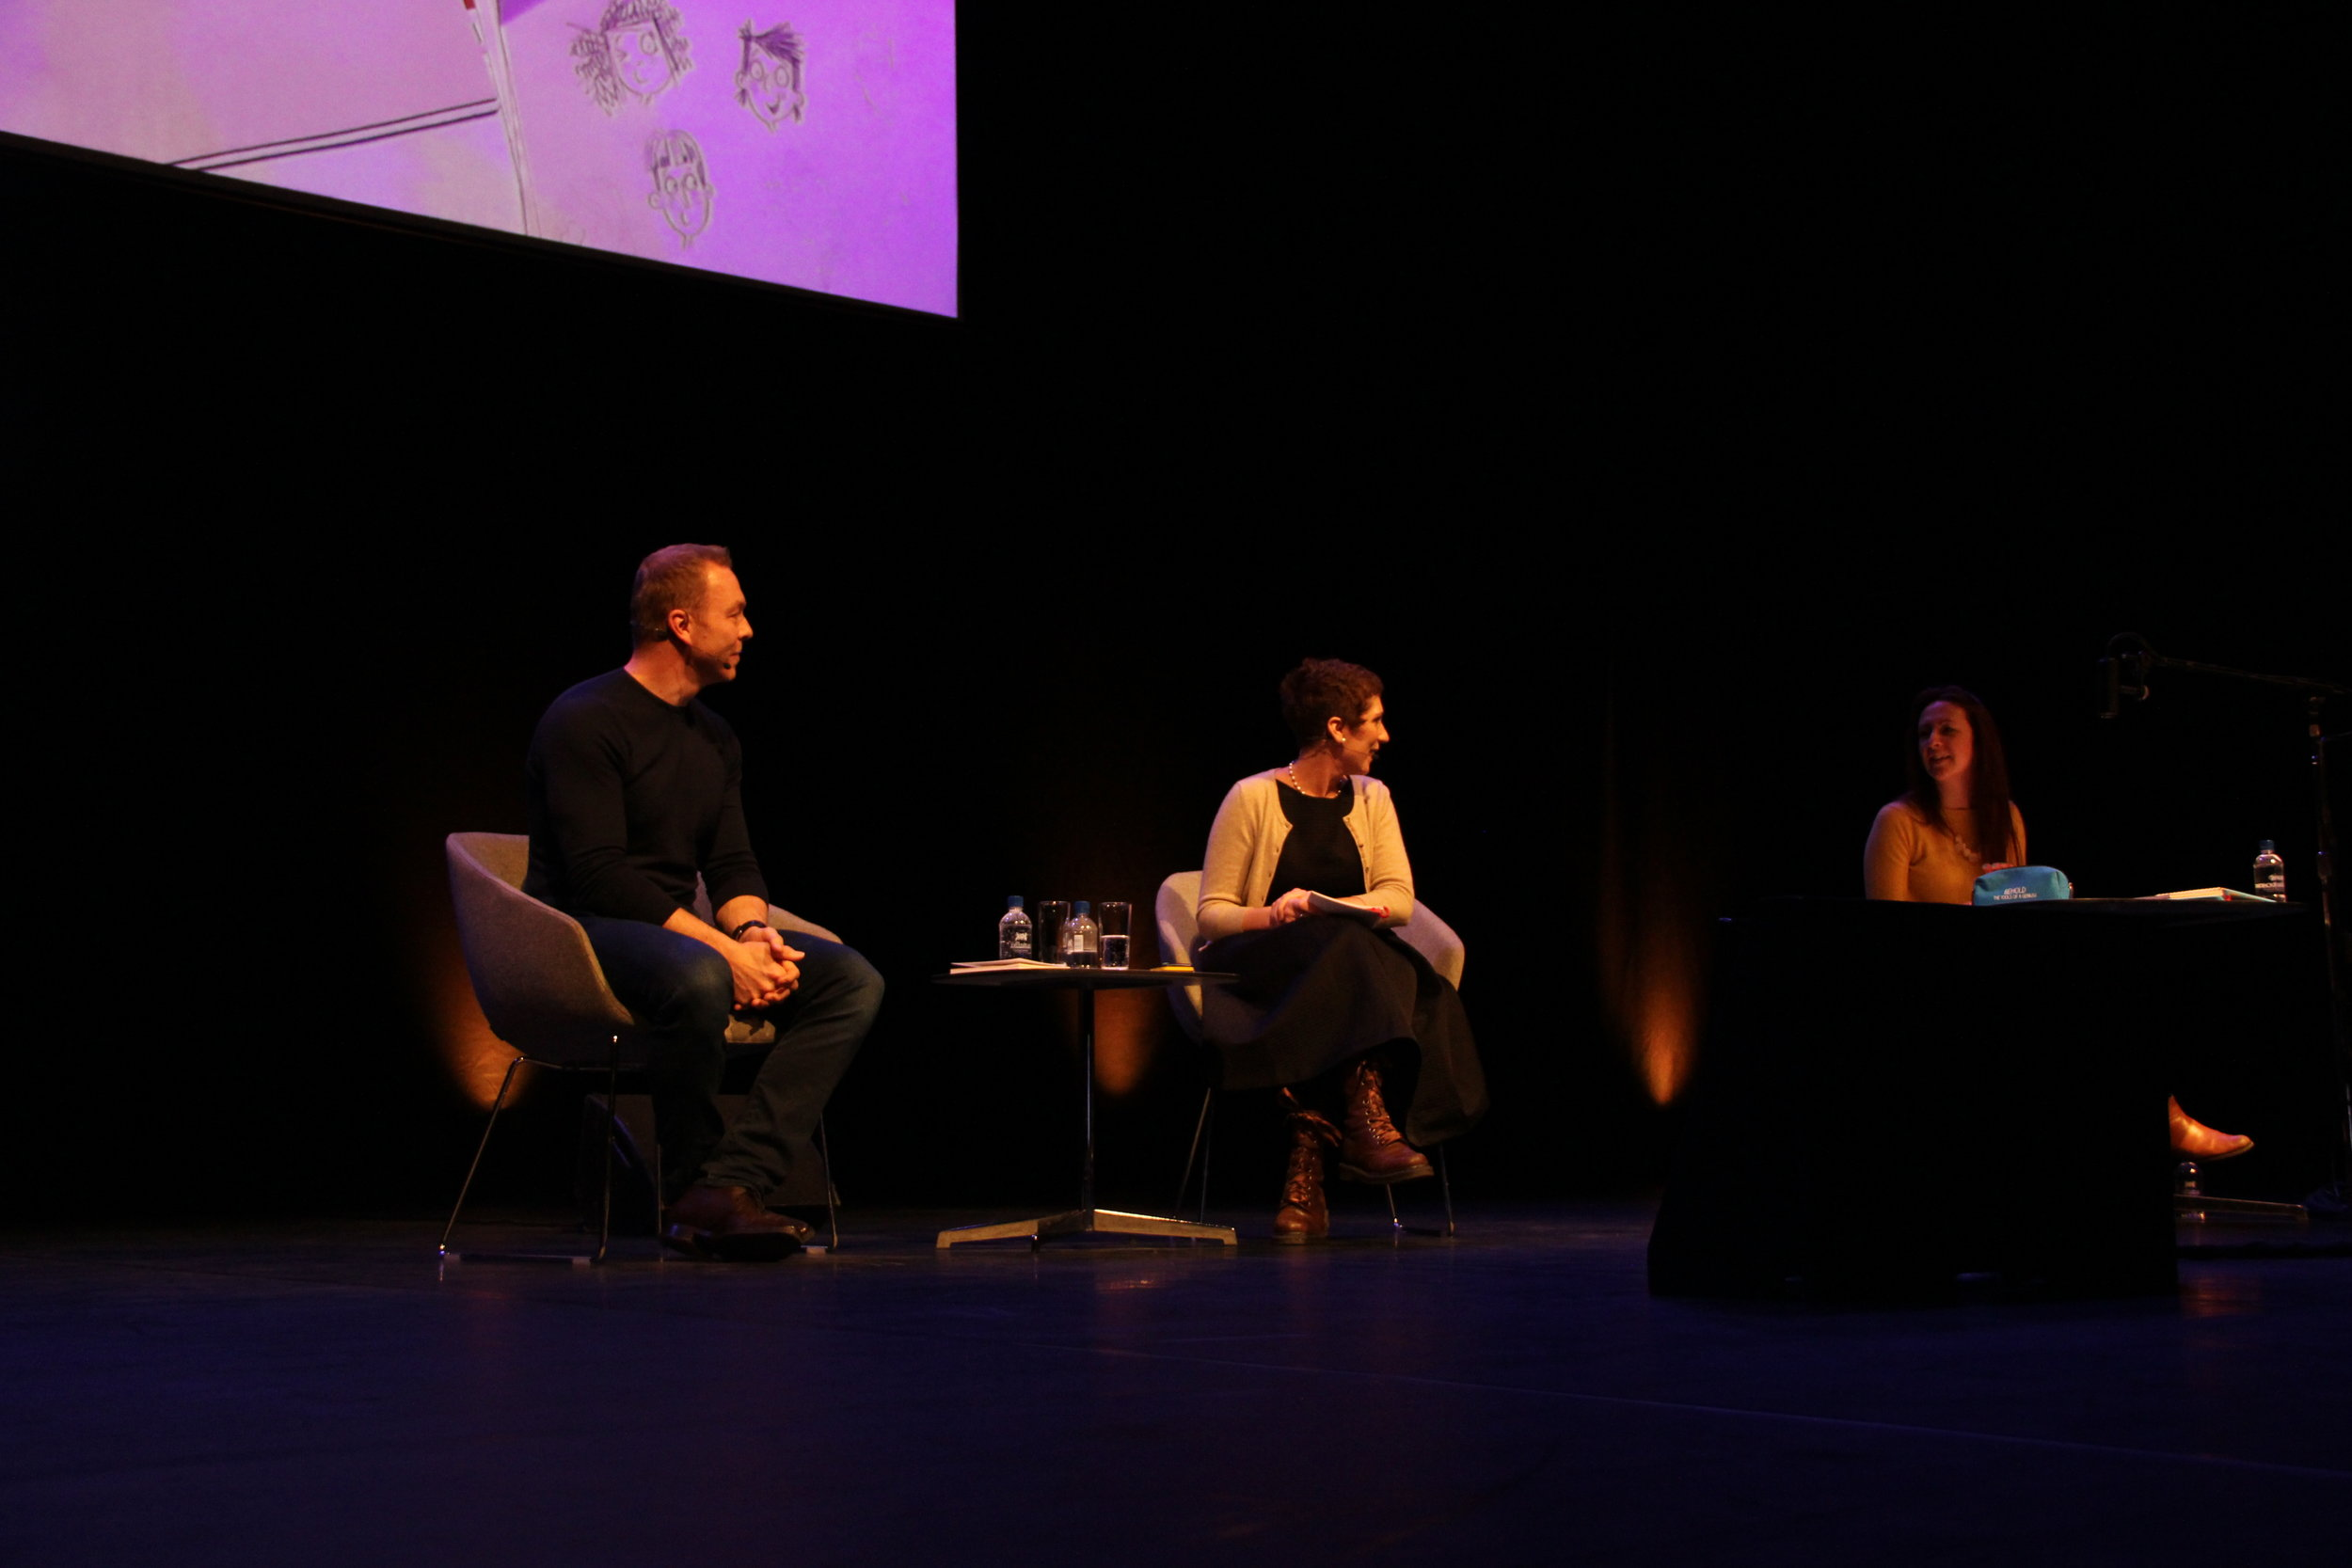 On stage at The Festival Hall with writer Joanna Nadim and illustrator Clare Elsom